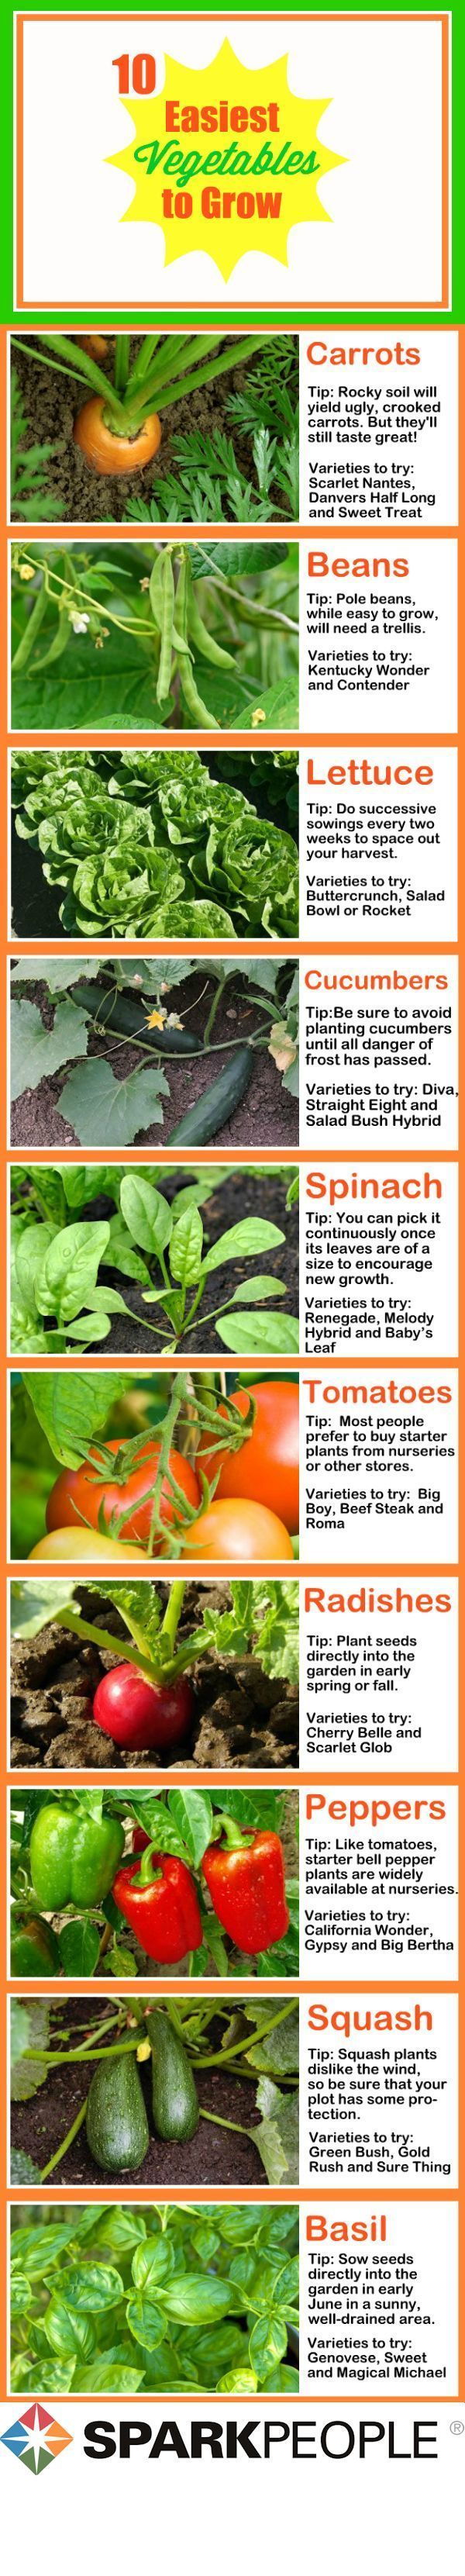 Food garden pictures - Best 25 Apartment Vegetable Garden Ideas On Pinterest Growing Vegetables Indoors Indoor Vegetable Gardening And Container Vegetable Gardening